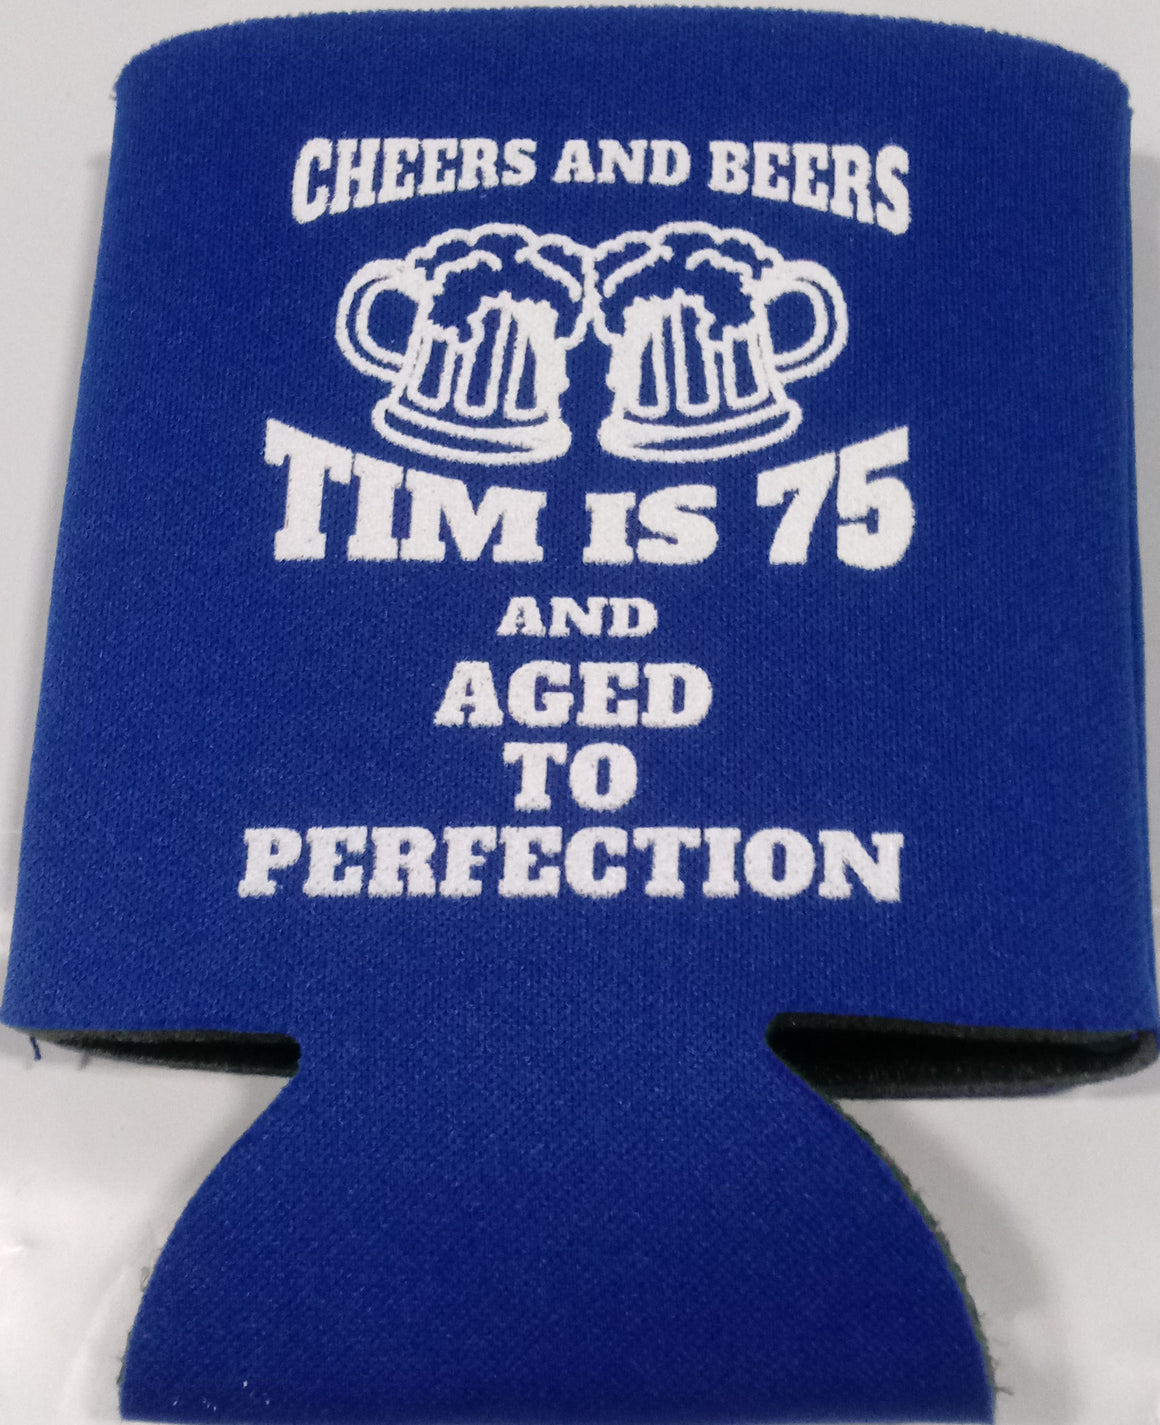 Aged to Perfection 75th Birthday Koozie Cheers and beers